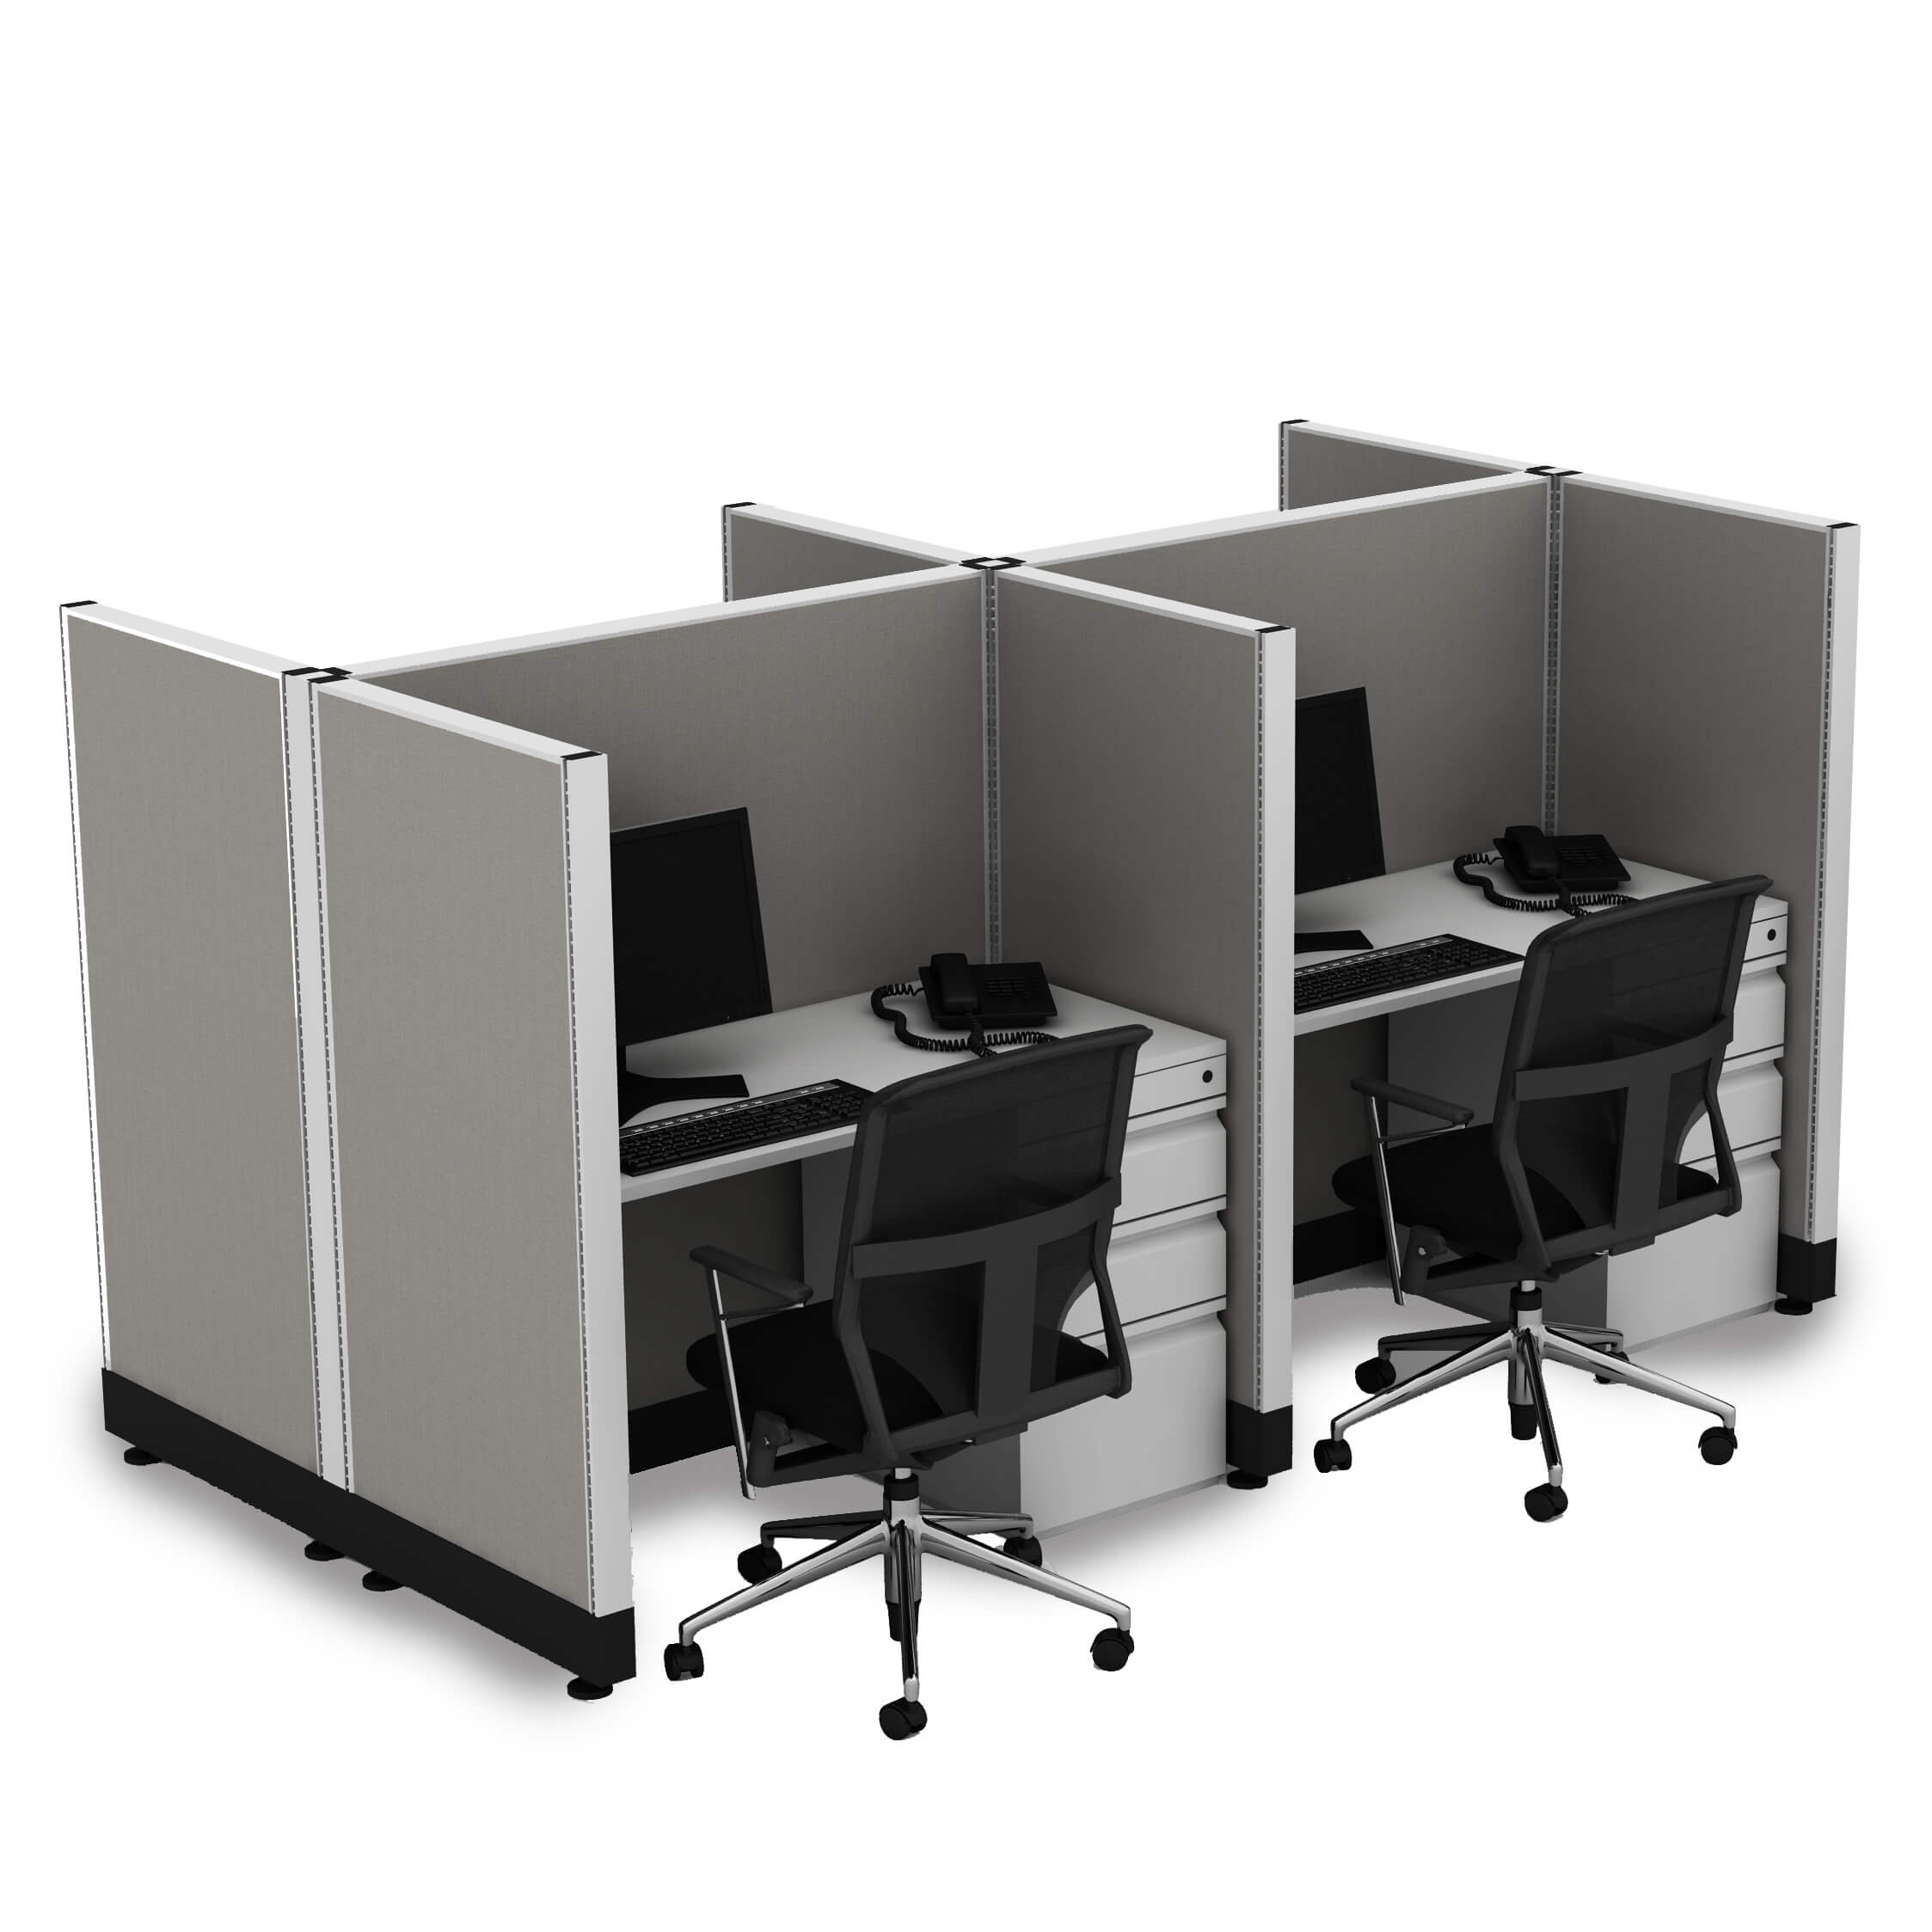 Office Hoteling 53 High Unpowered - Office Cubicle Desk 53H 4pack ...